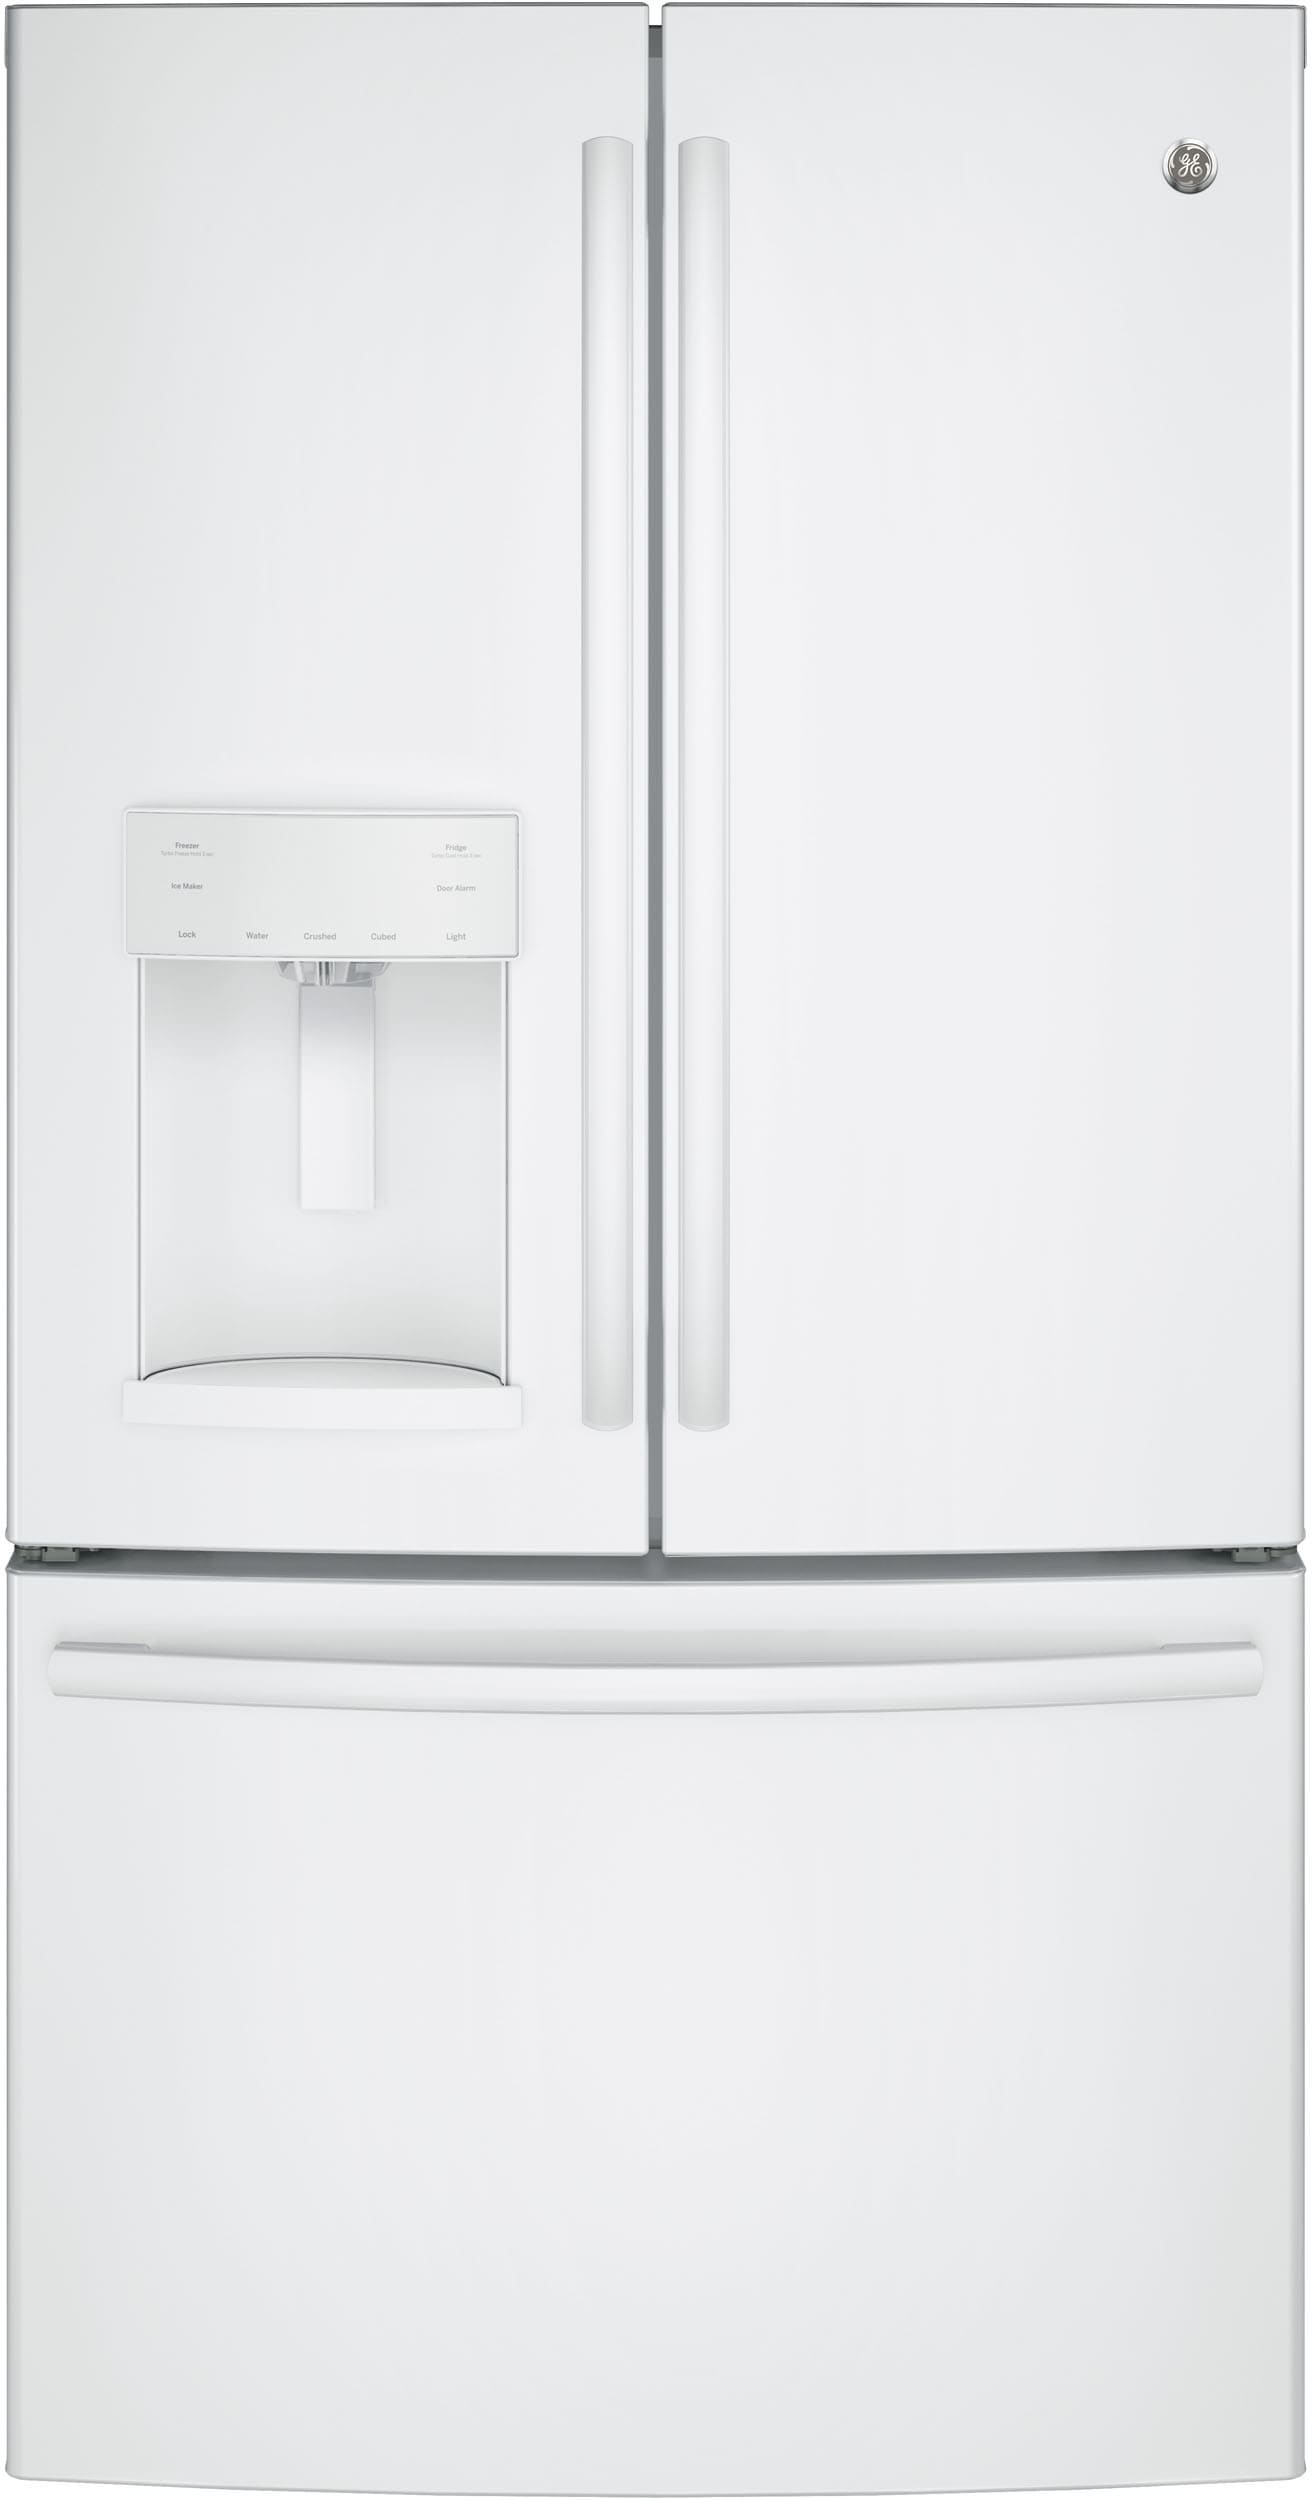 Ge Appliances Water Filter Ge Gfe28ggkww 36 Inch French Door Refrigerator With Twinchill